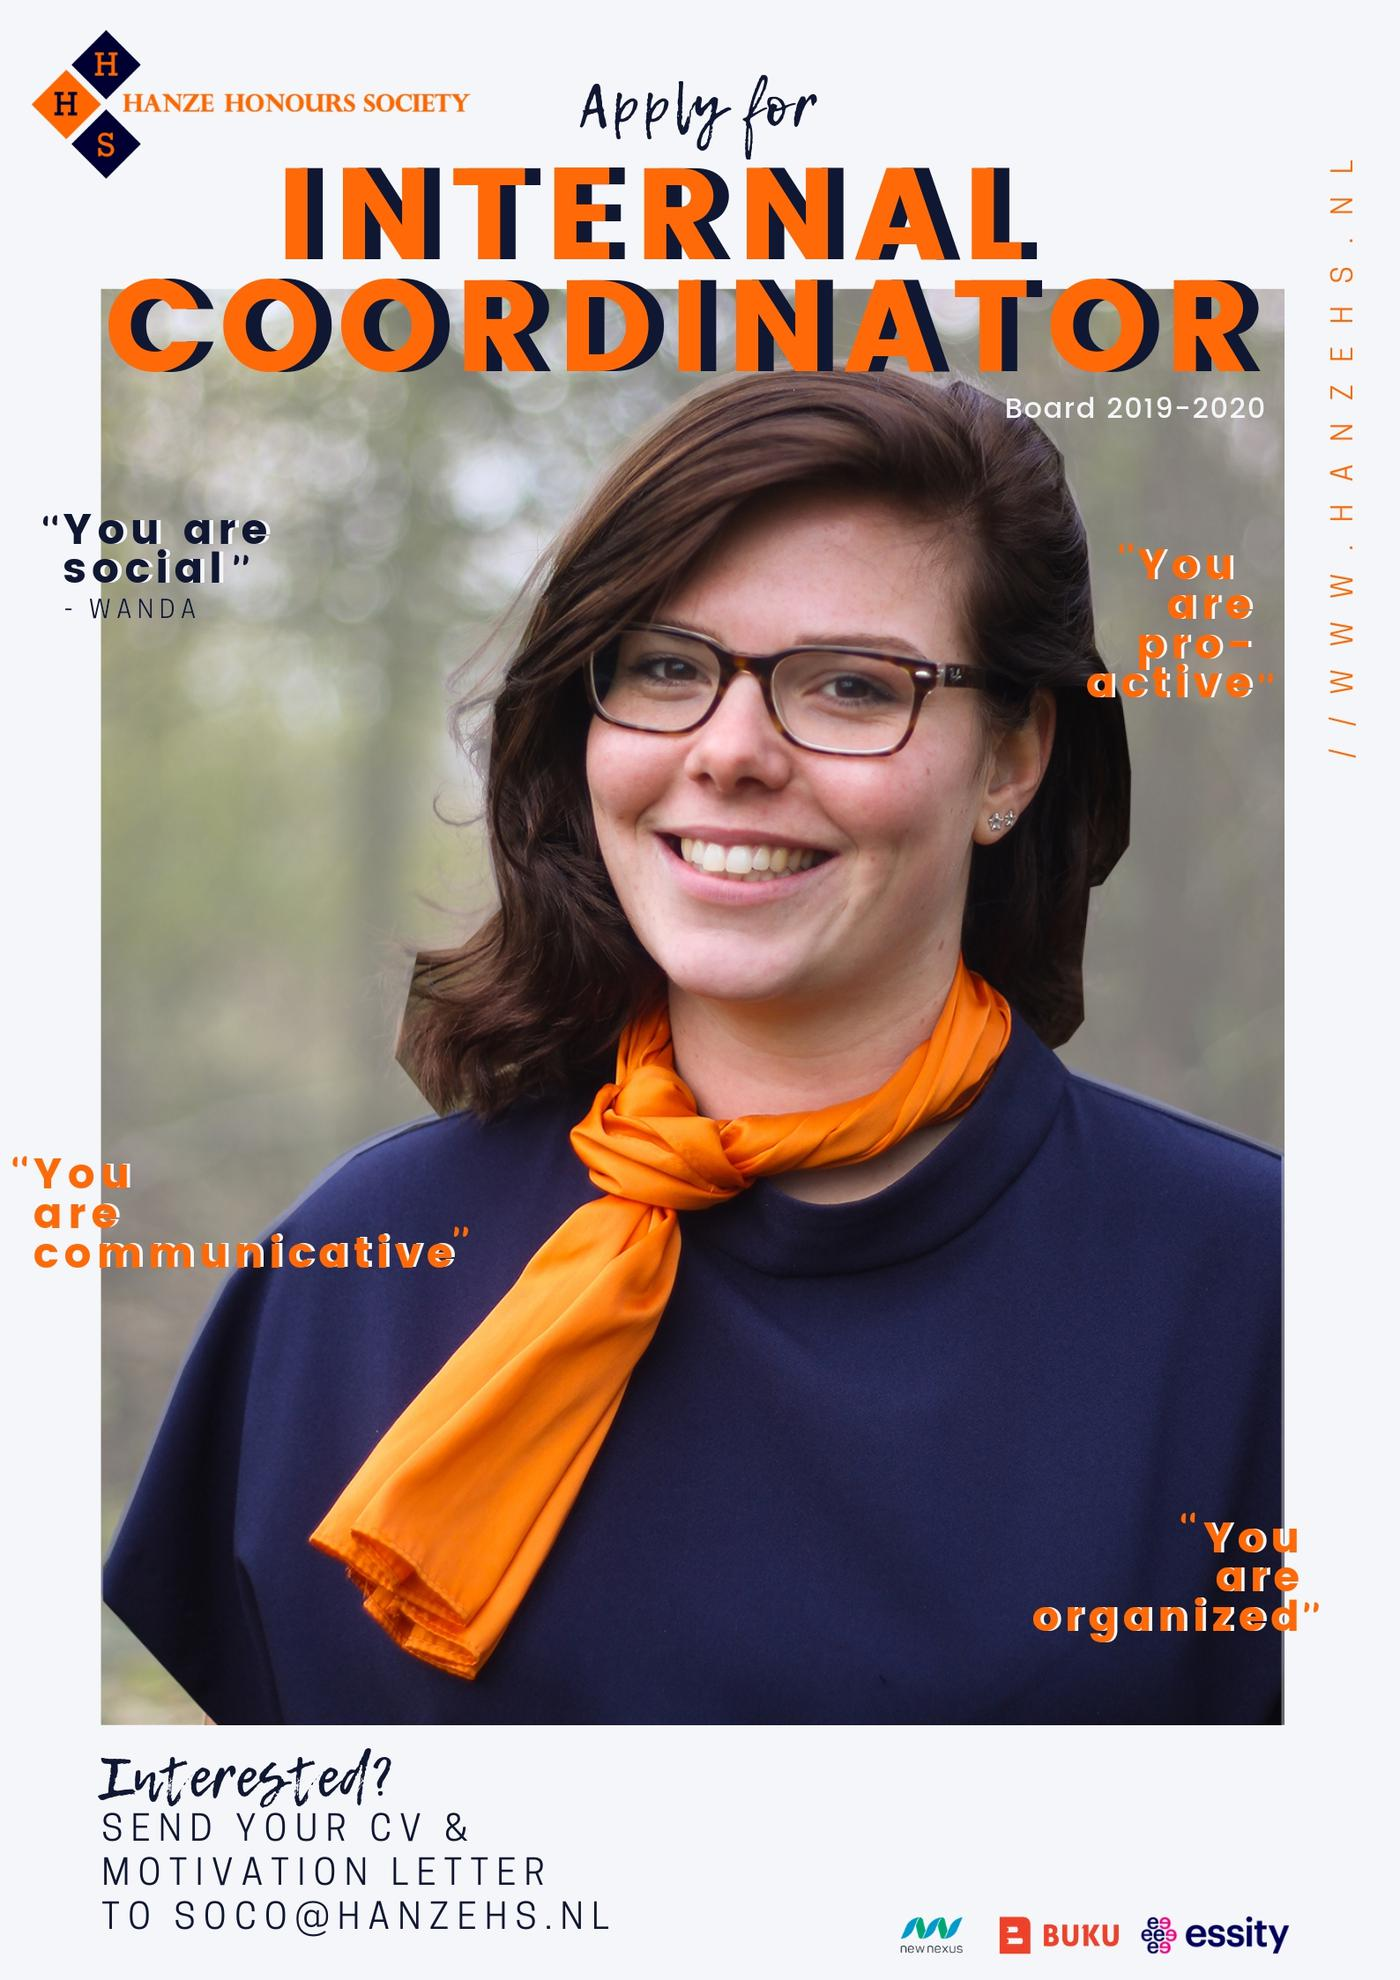 Are you our next internal coordinator?